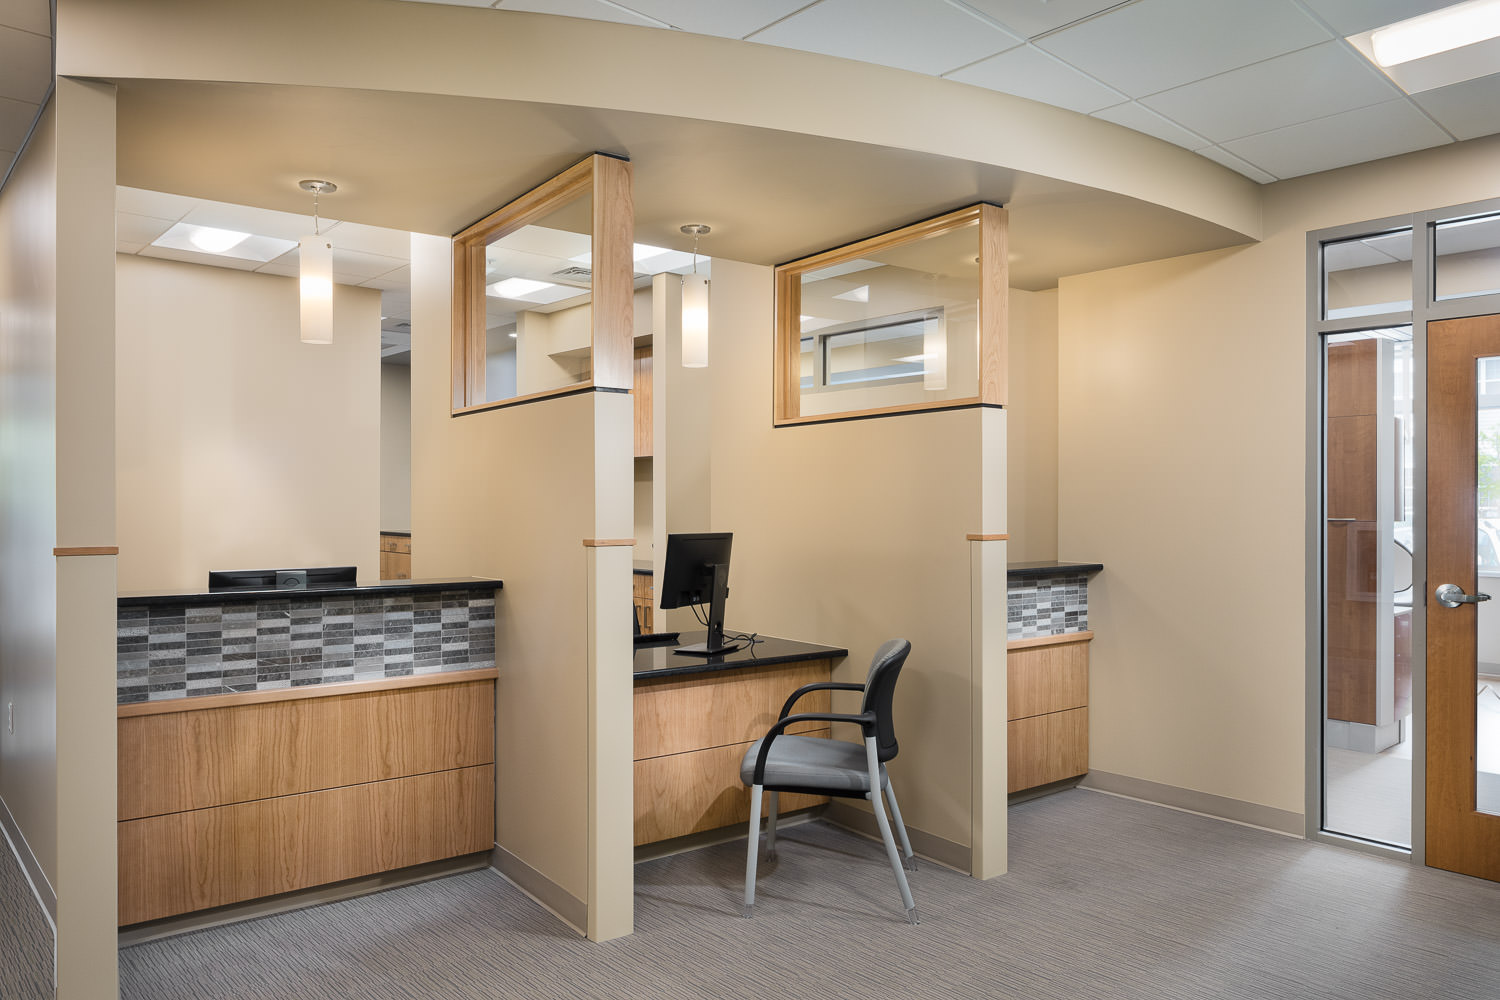 Photo of the patient check-in desks in the new Timberlane Dental Office in Essex Vermont with interior design by BSD Interior Design and construction by Neagley & Chase photographed by Studio SB.